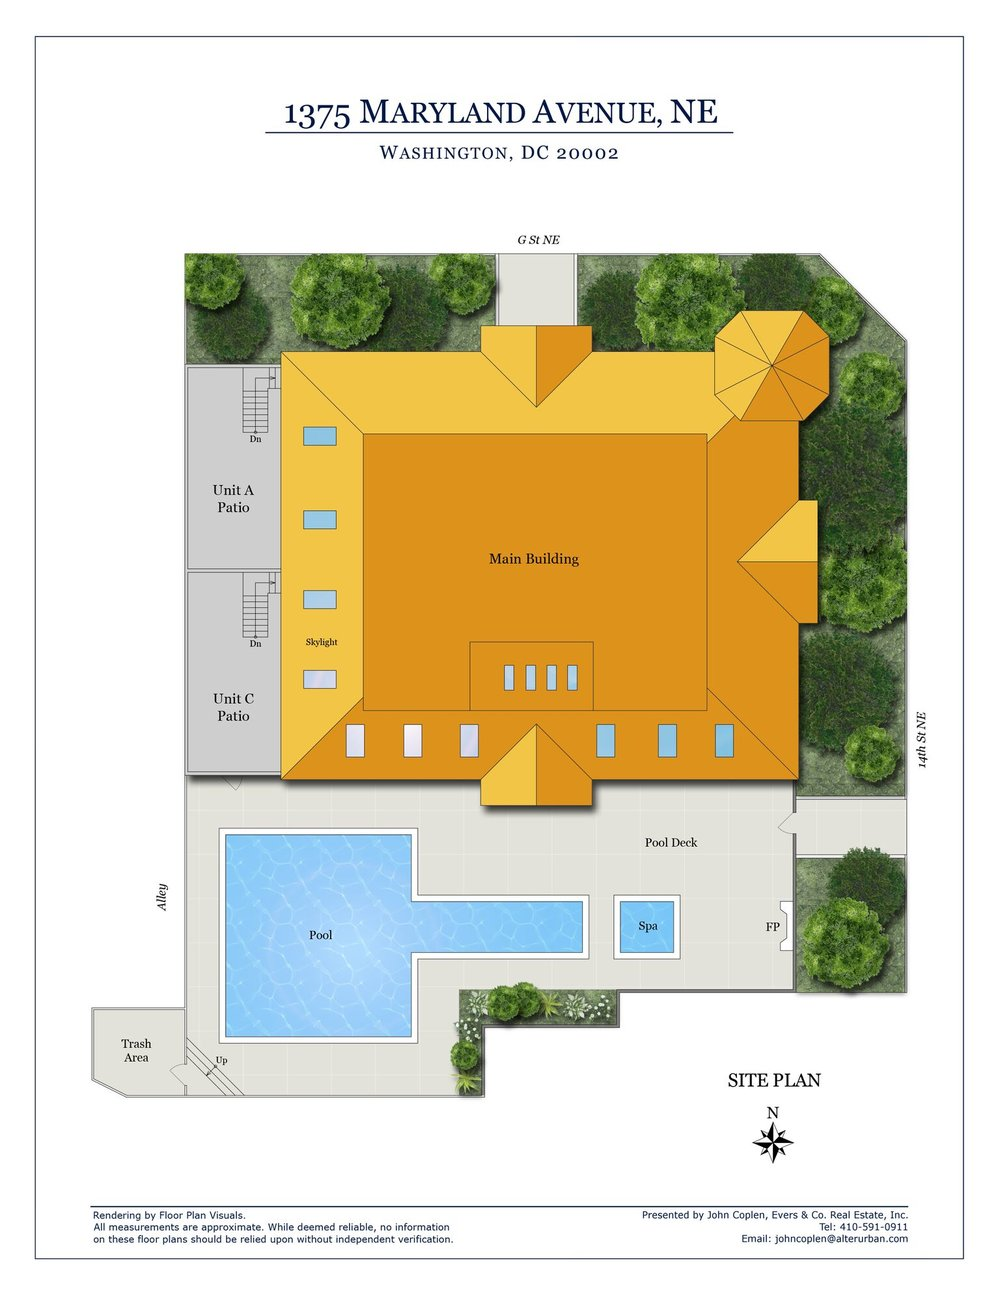 00 - Site Plan.jpeg